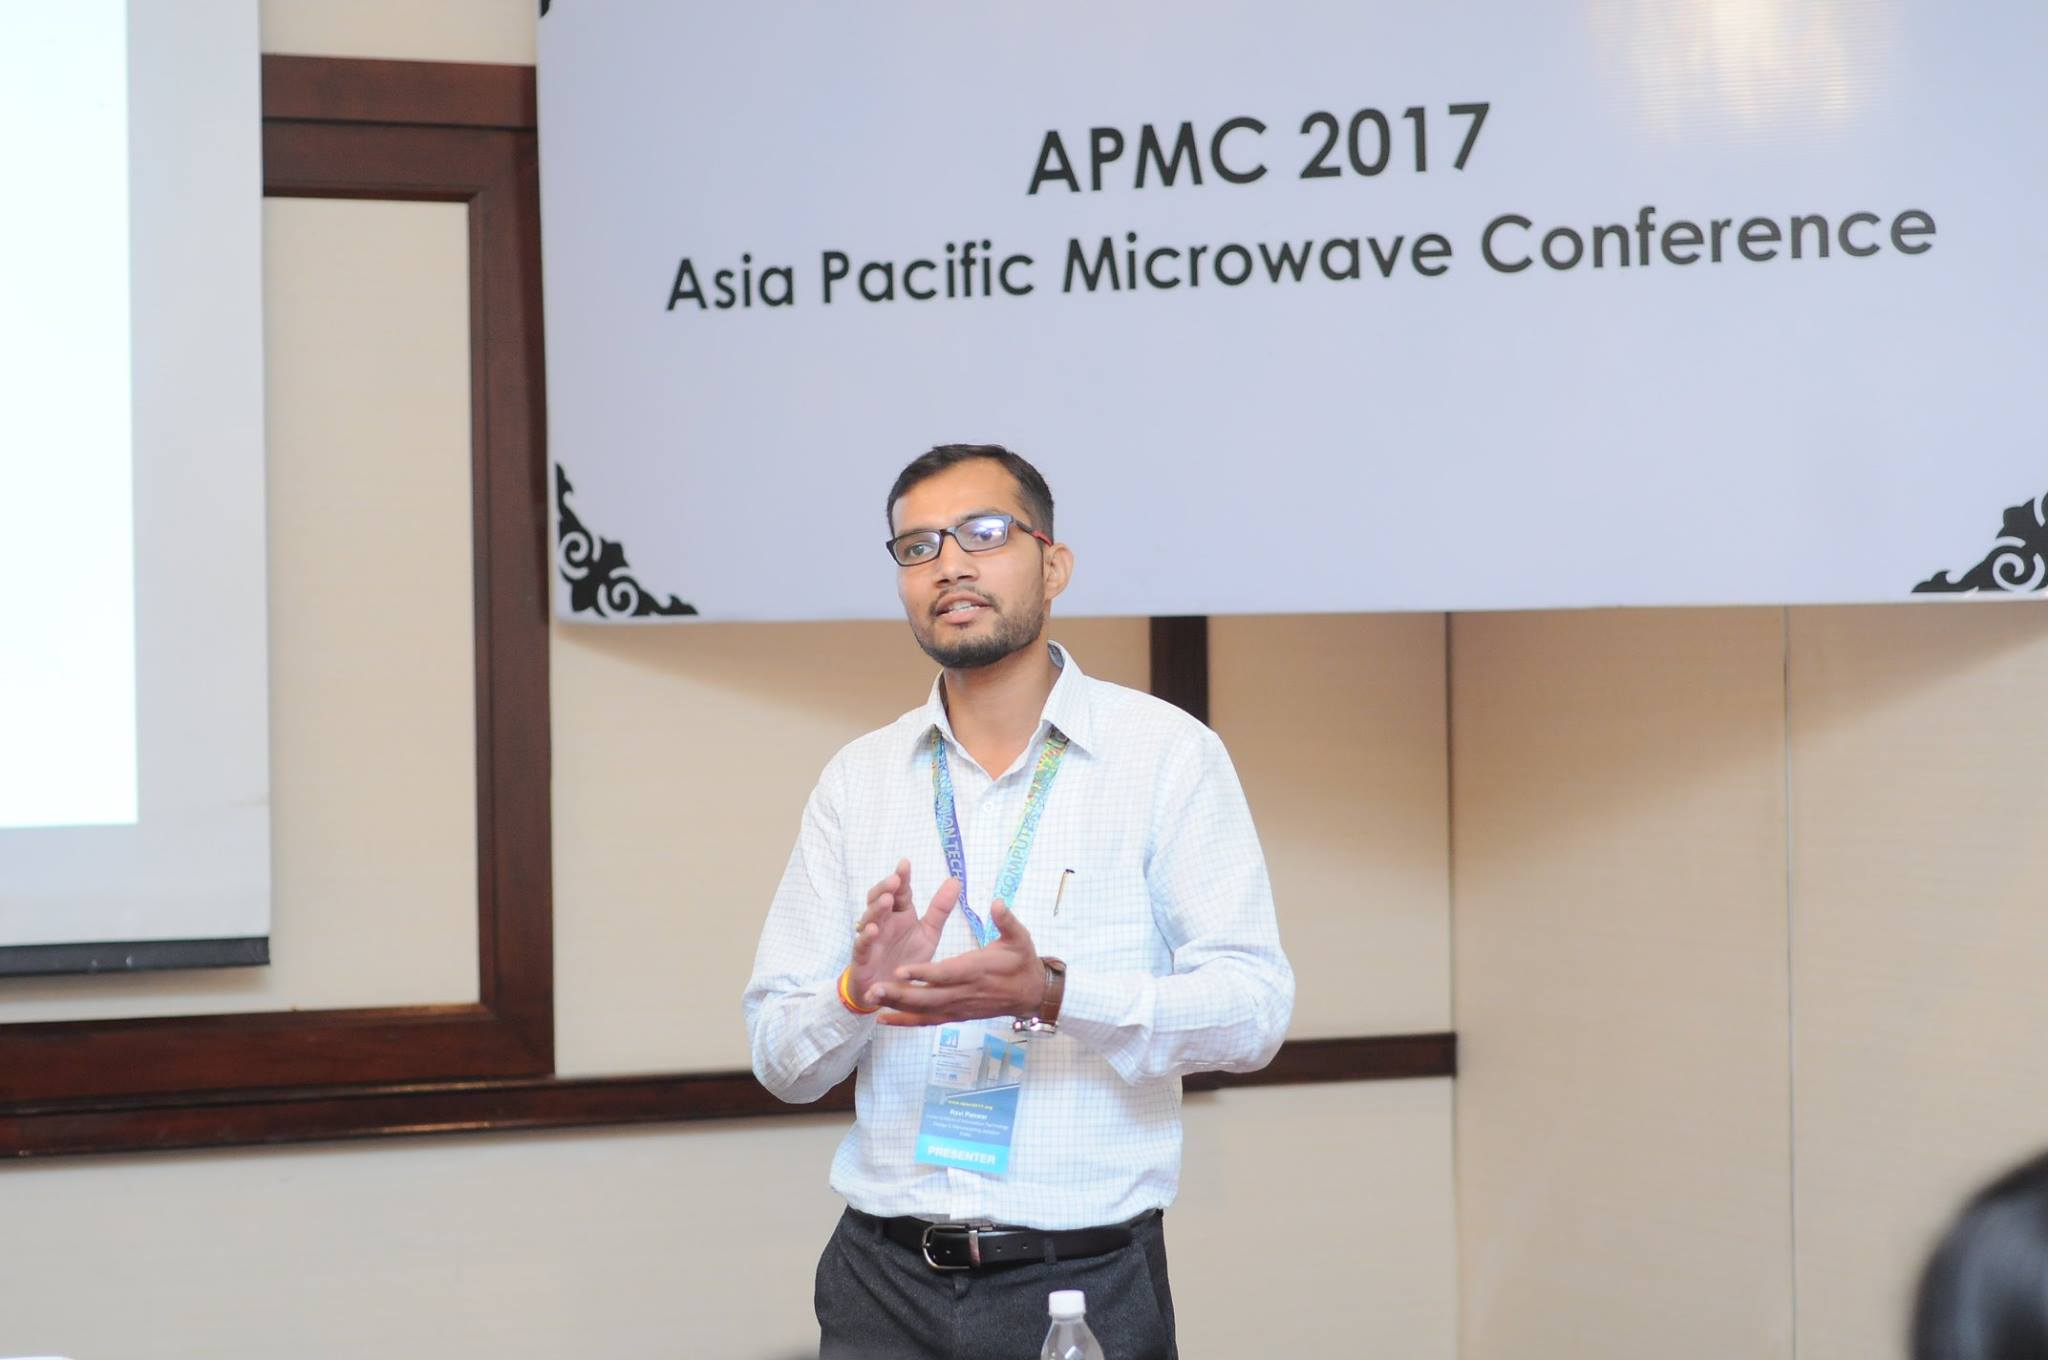 Session Chair and Speaker, APMC-2017, Kuala Lumpur, Malaysia